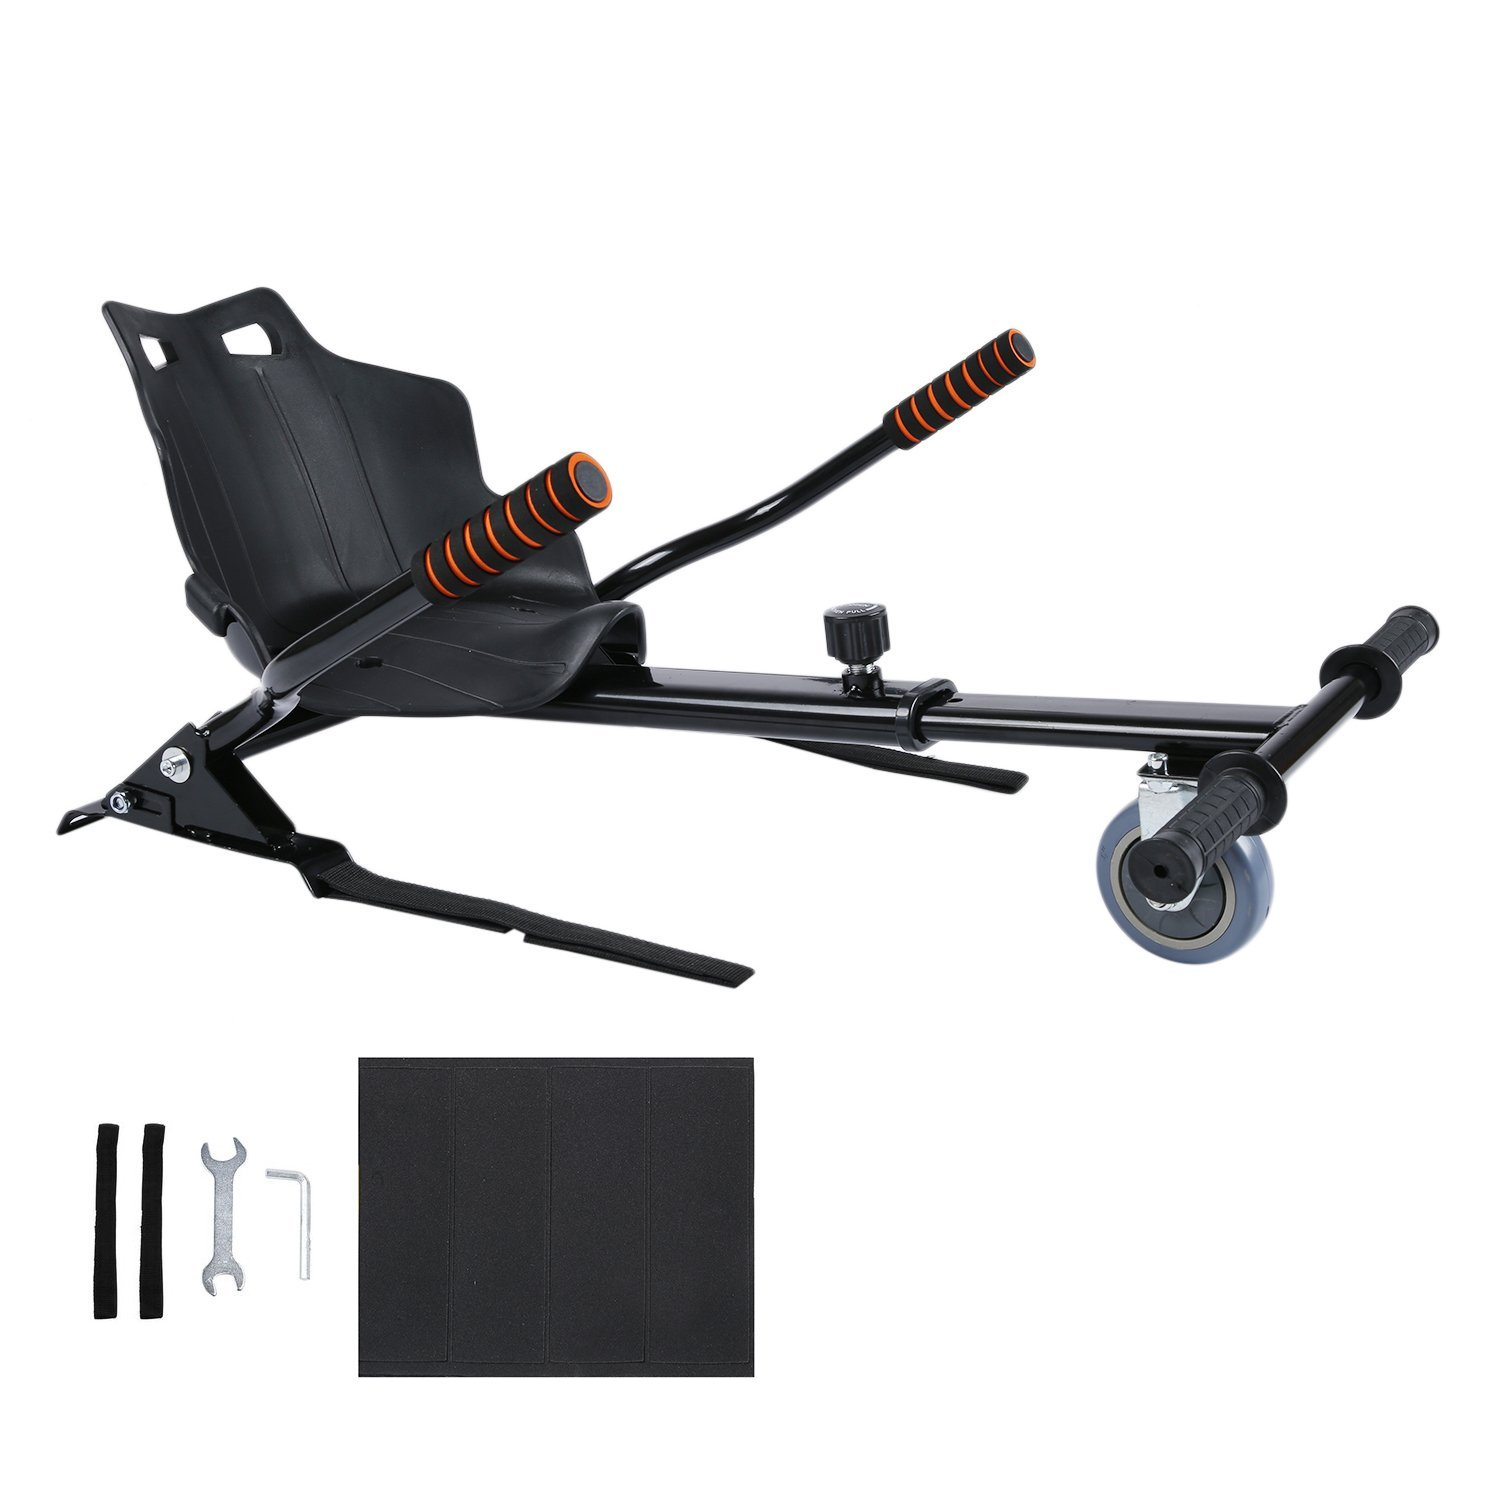 Hover Seat,Hoverboard accessaries,Big Wheel Go Kart for Hoverboards - Length Adjustable Shock Absorber Go Kart Hover Seat for Swegway Hoverboard Electric Scooter fit All Heights All Ages (Black)